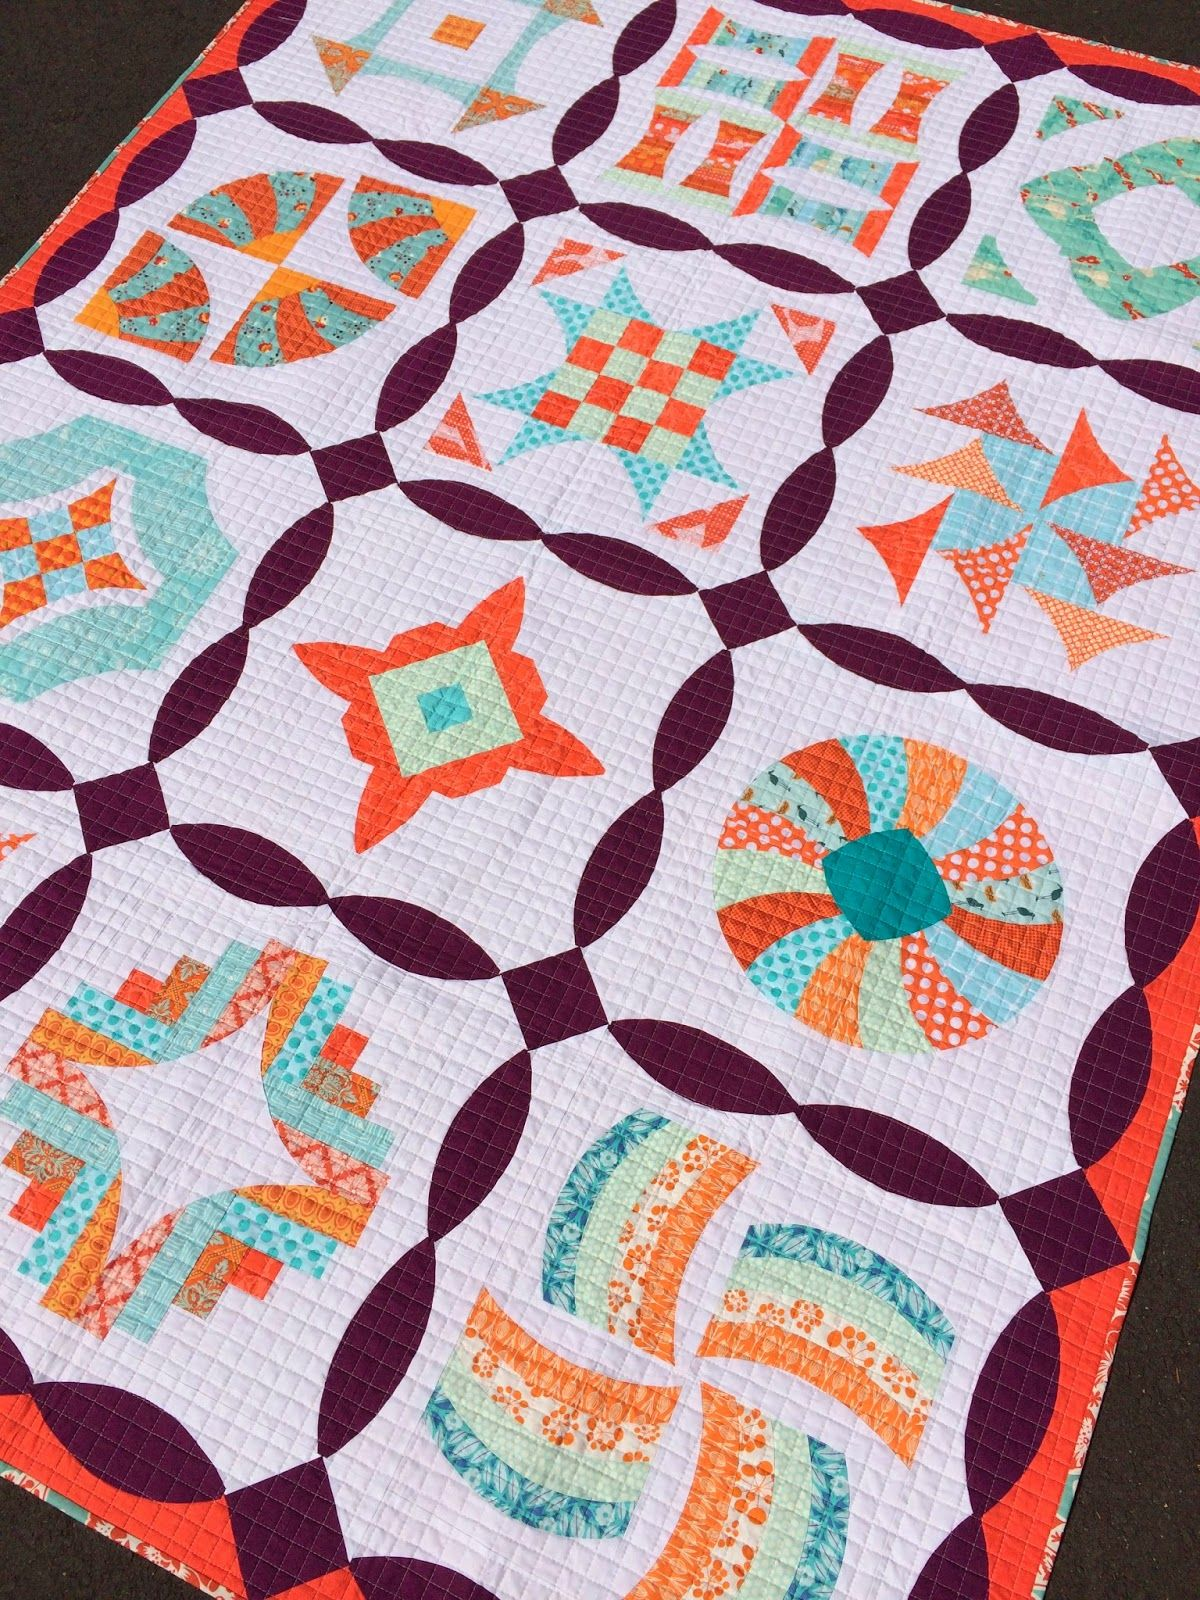 Sew Kind Of Wonderful: New patterns now available!